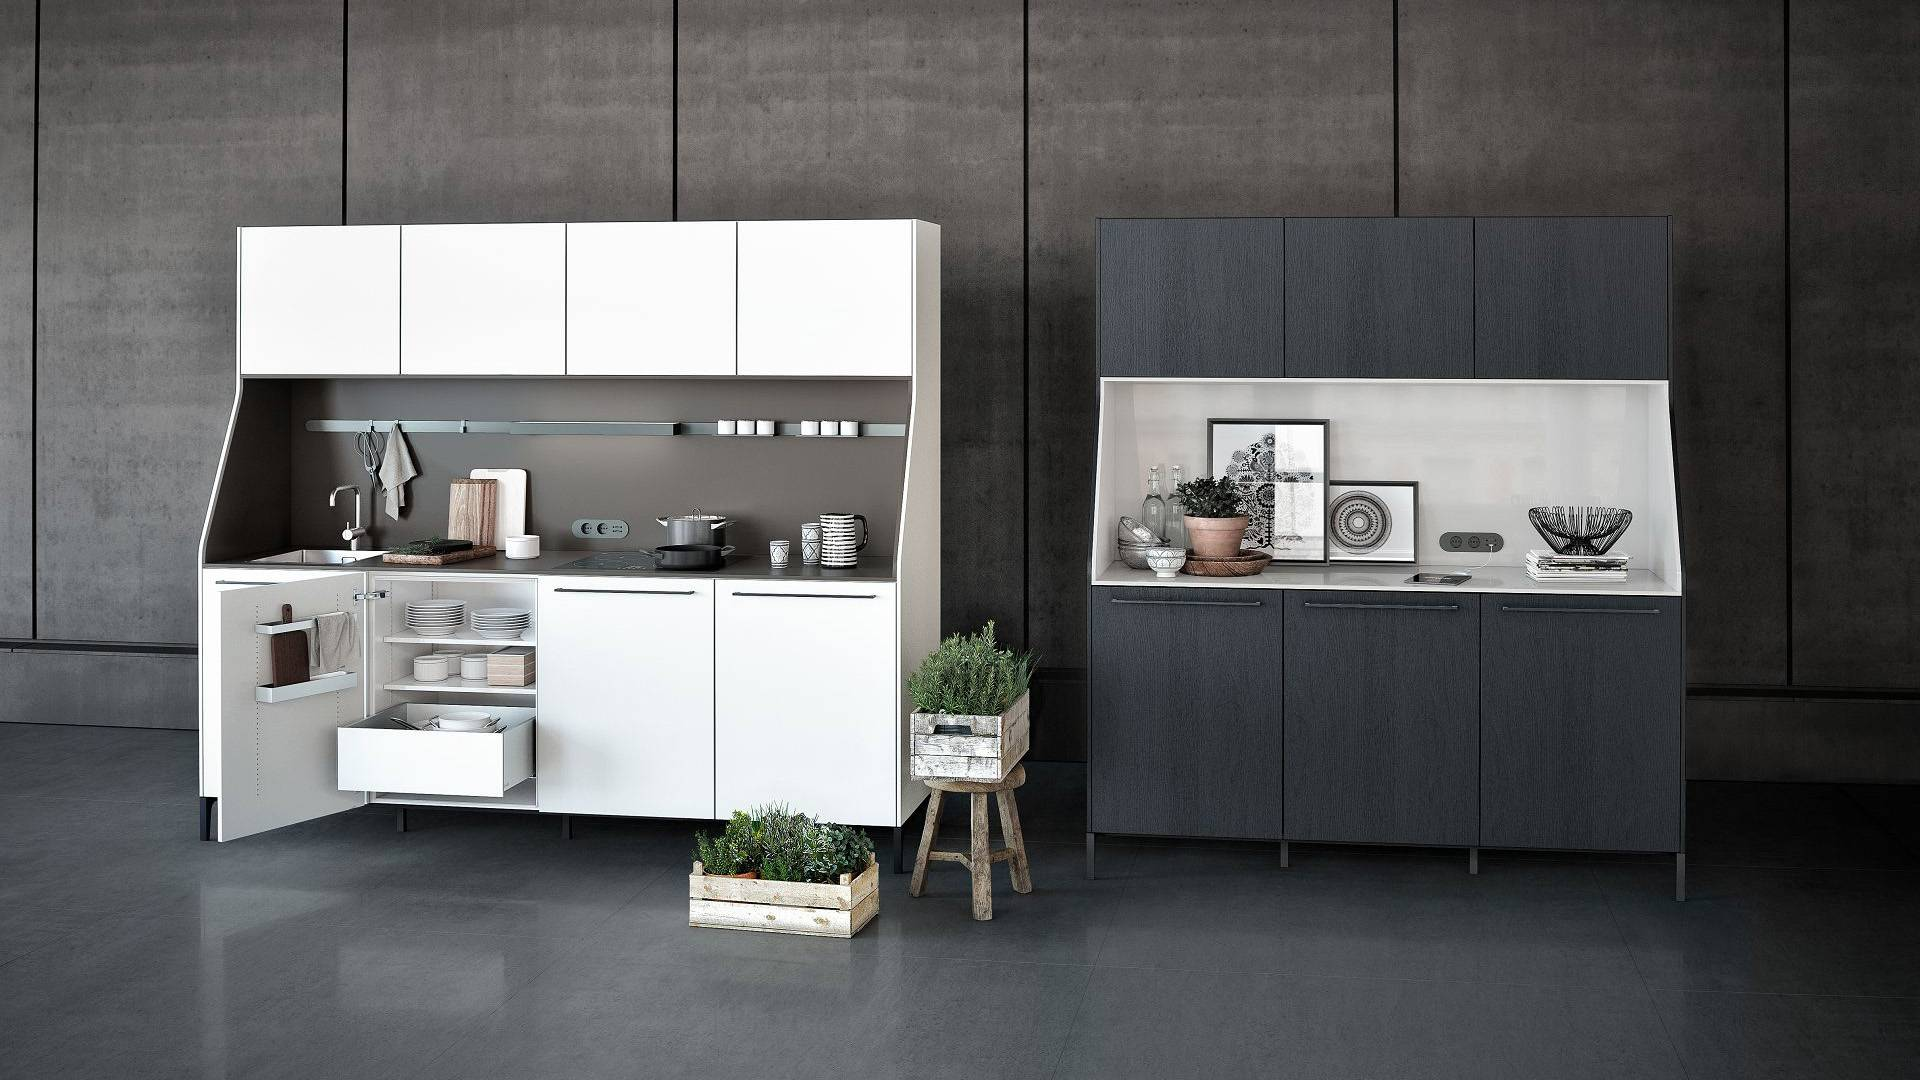 House Design Keuken : Siematic kitchen interior design of timeless elegance